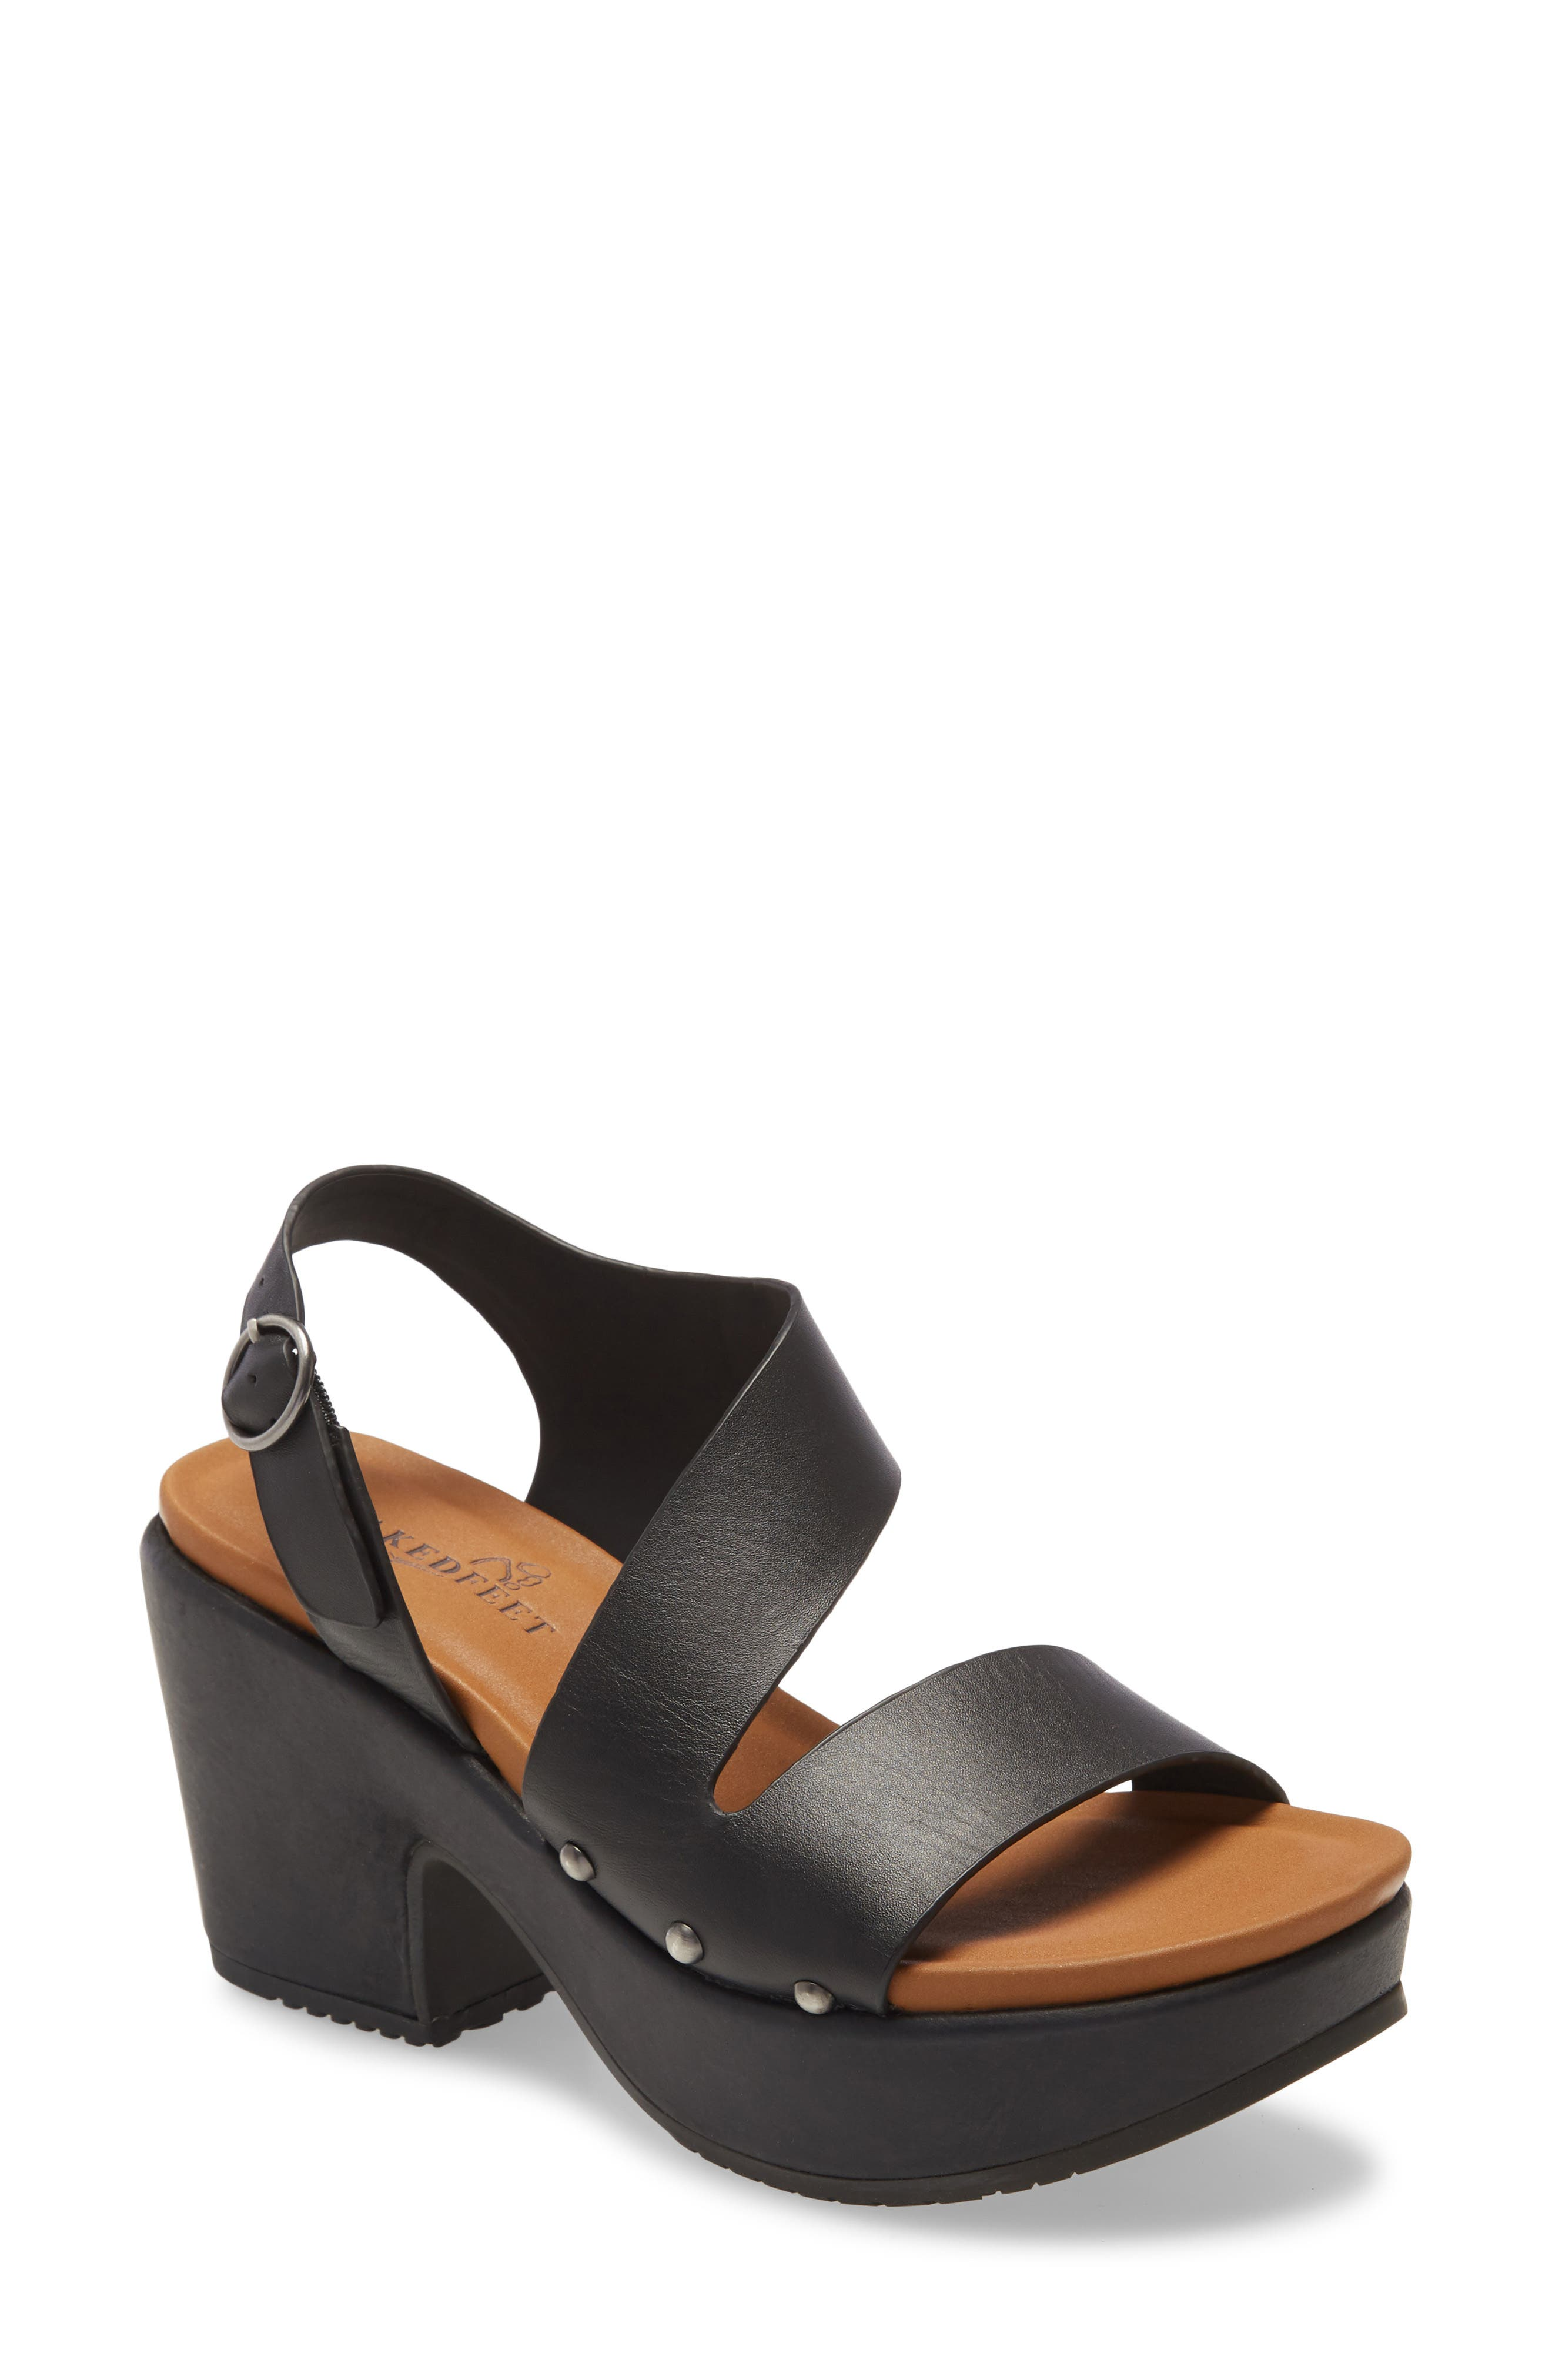 Slanted straps and dome studs define a comfortable padded sandal that\\\'s lifted by a chunky platform and heel for \\\'70s flair. Style Name: Naked Feet Dasa Platform Sandal (Women). Style Number: 6042920. Available in stores.